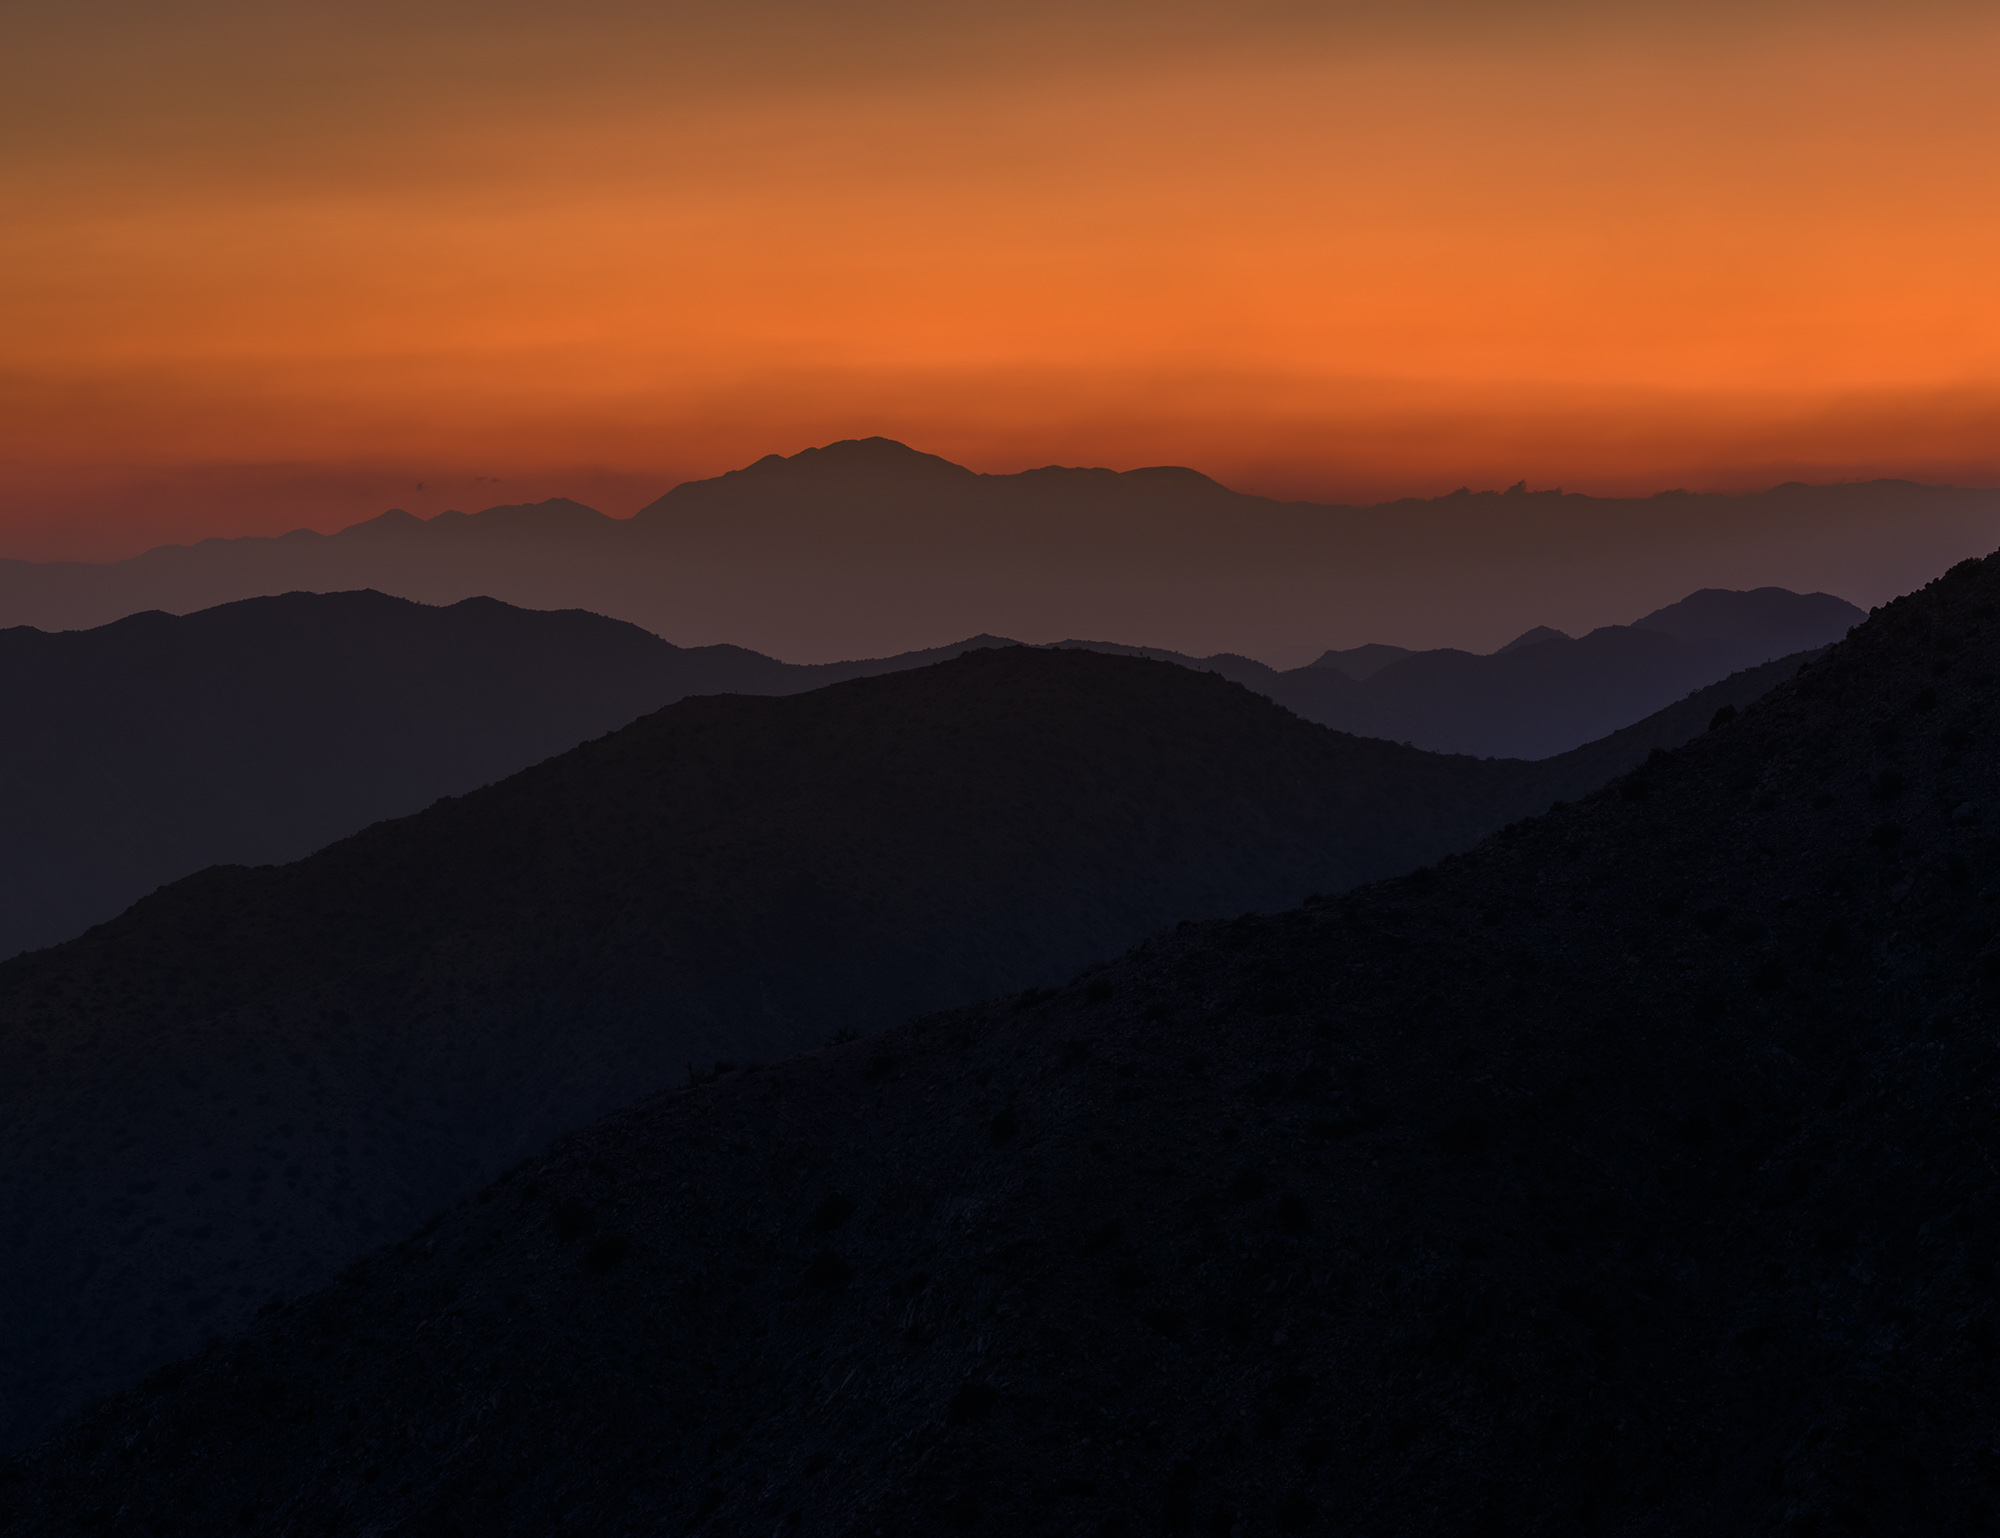 The sun sets over the San Jacinto mountains in California